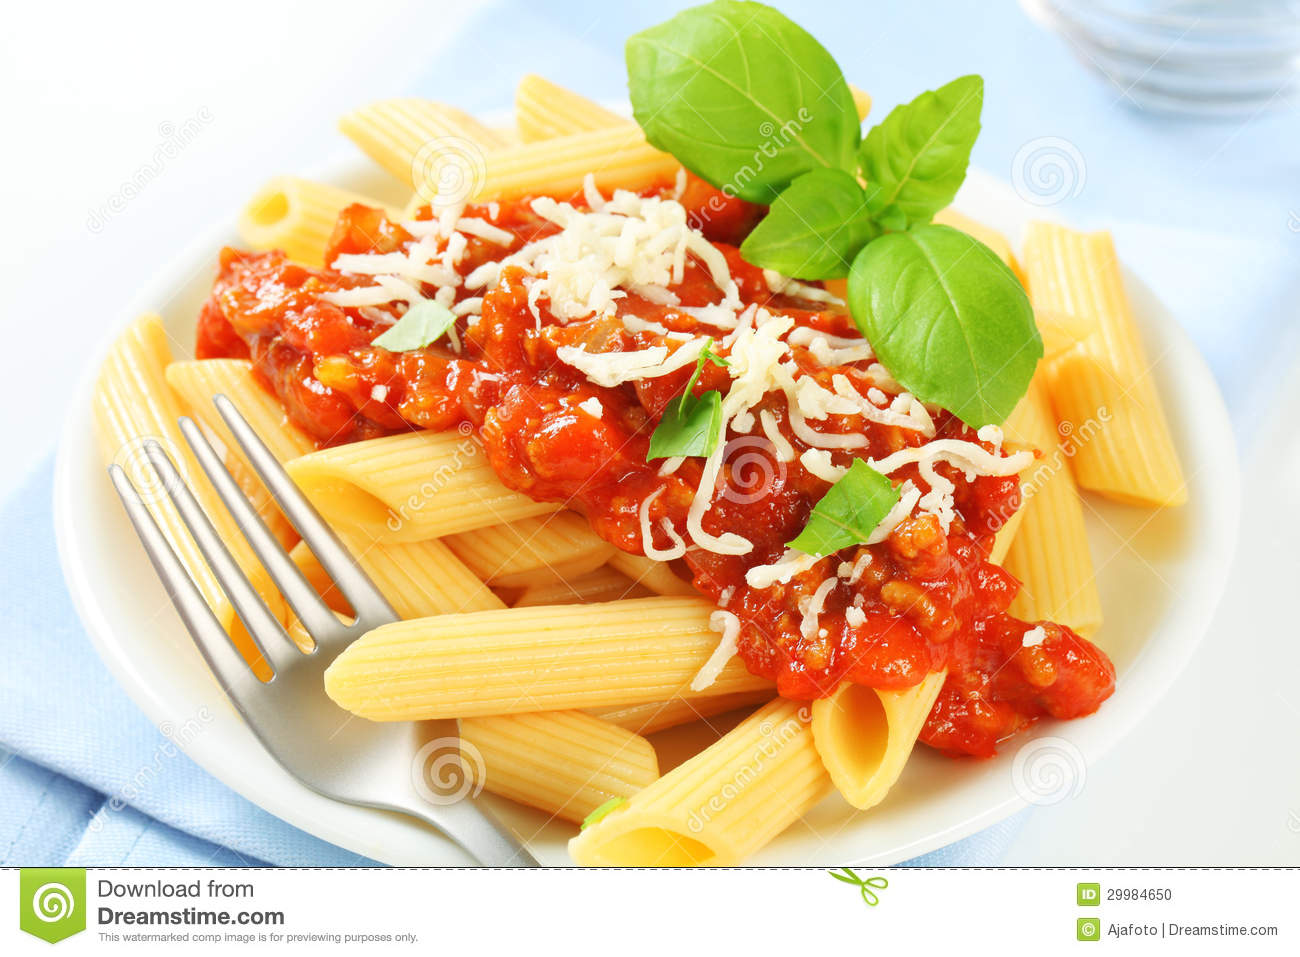 Penne With Meat Tomato Sauce Stock Photo - Image: 29984650